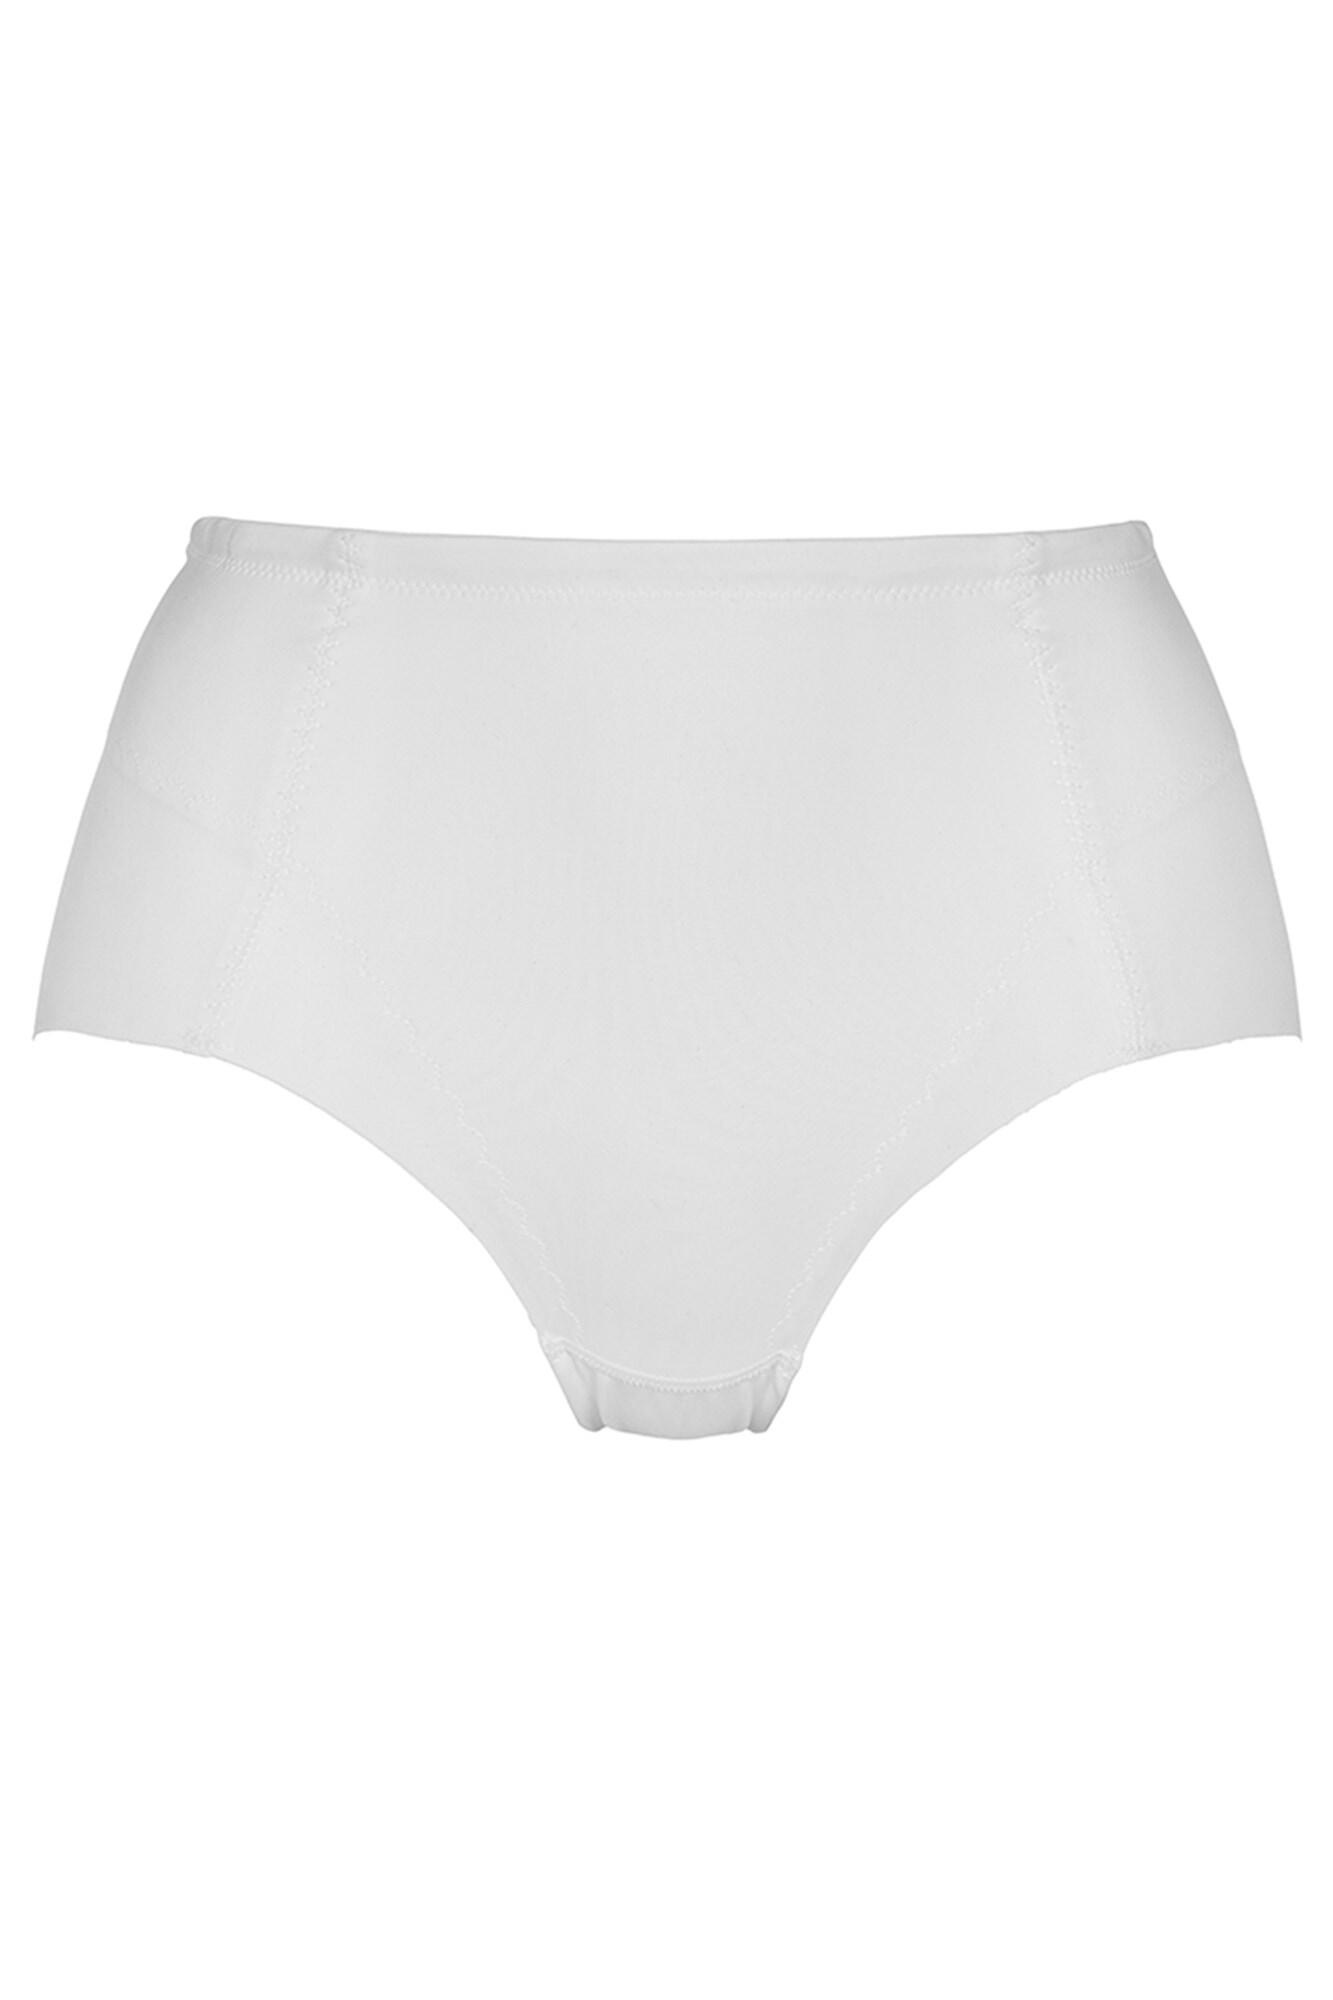 Superfit Everyday Smooth Control Brief - White